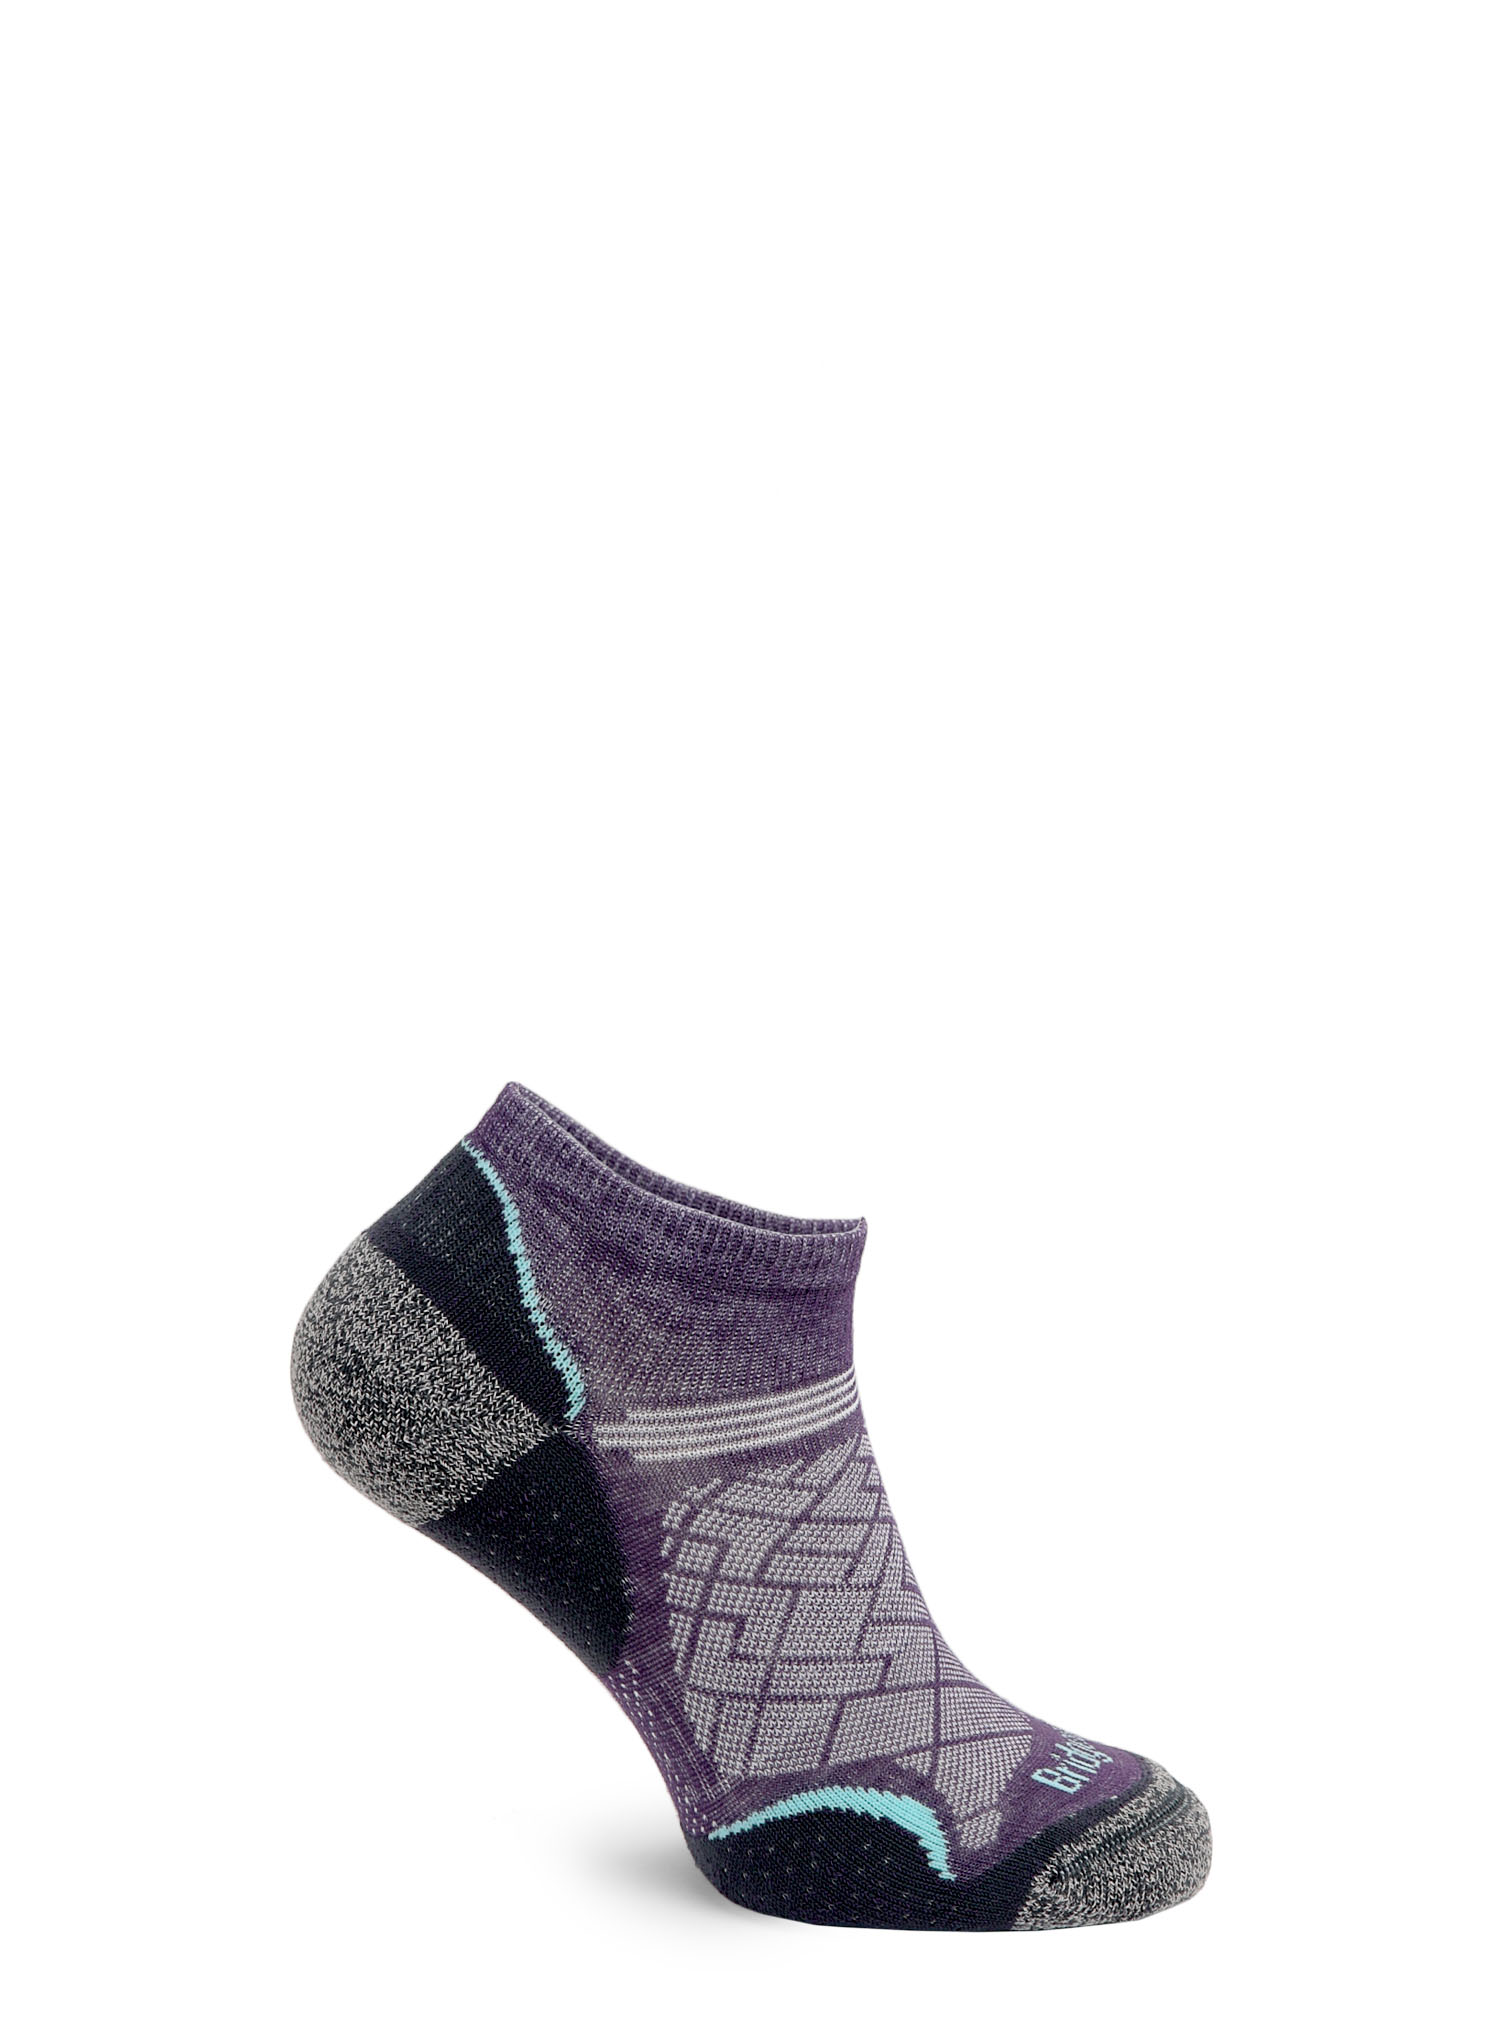 Skarpetki Bridgedale Hike Ultra Lt T2 Coolmax P Low - purple/grey - zdjęcie nr. 4